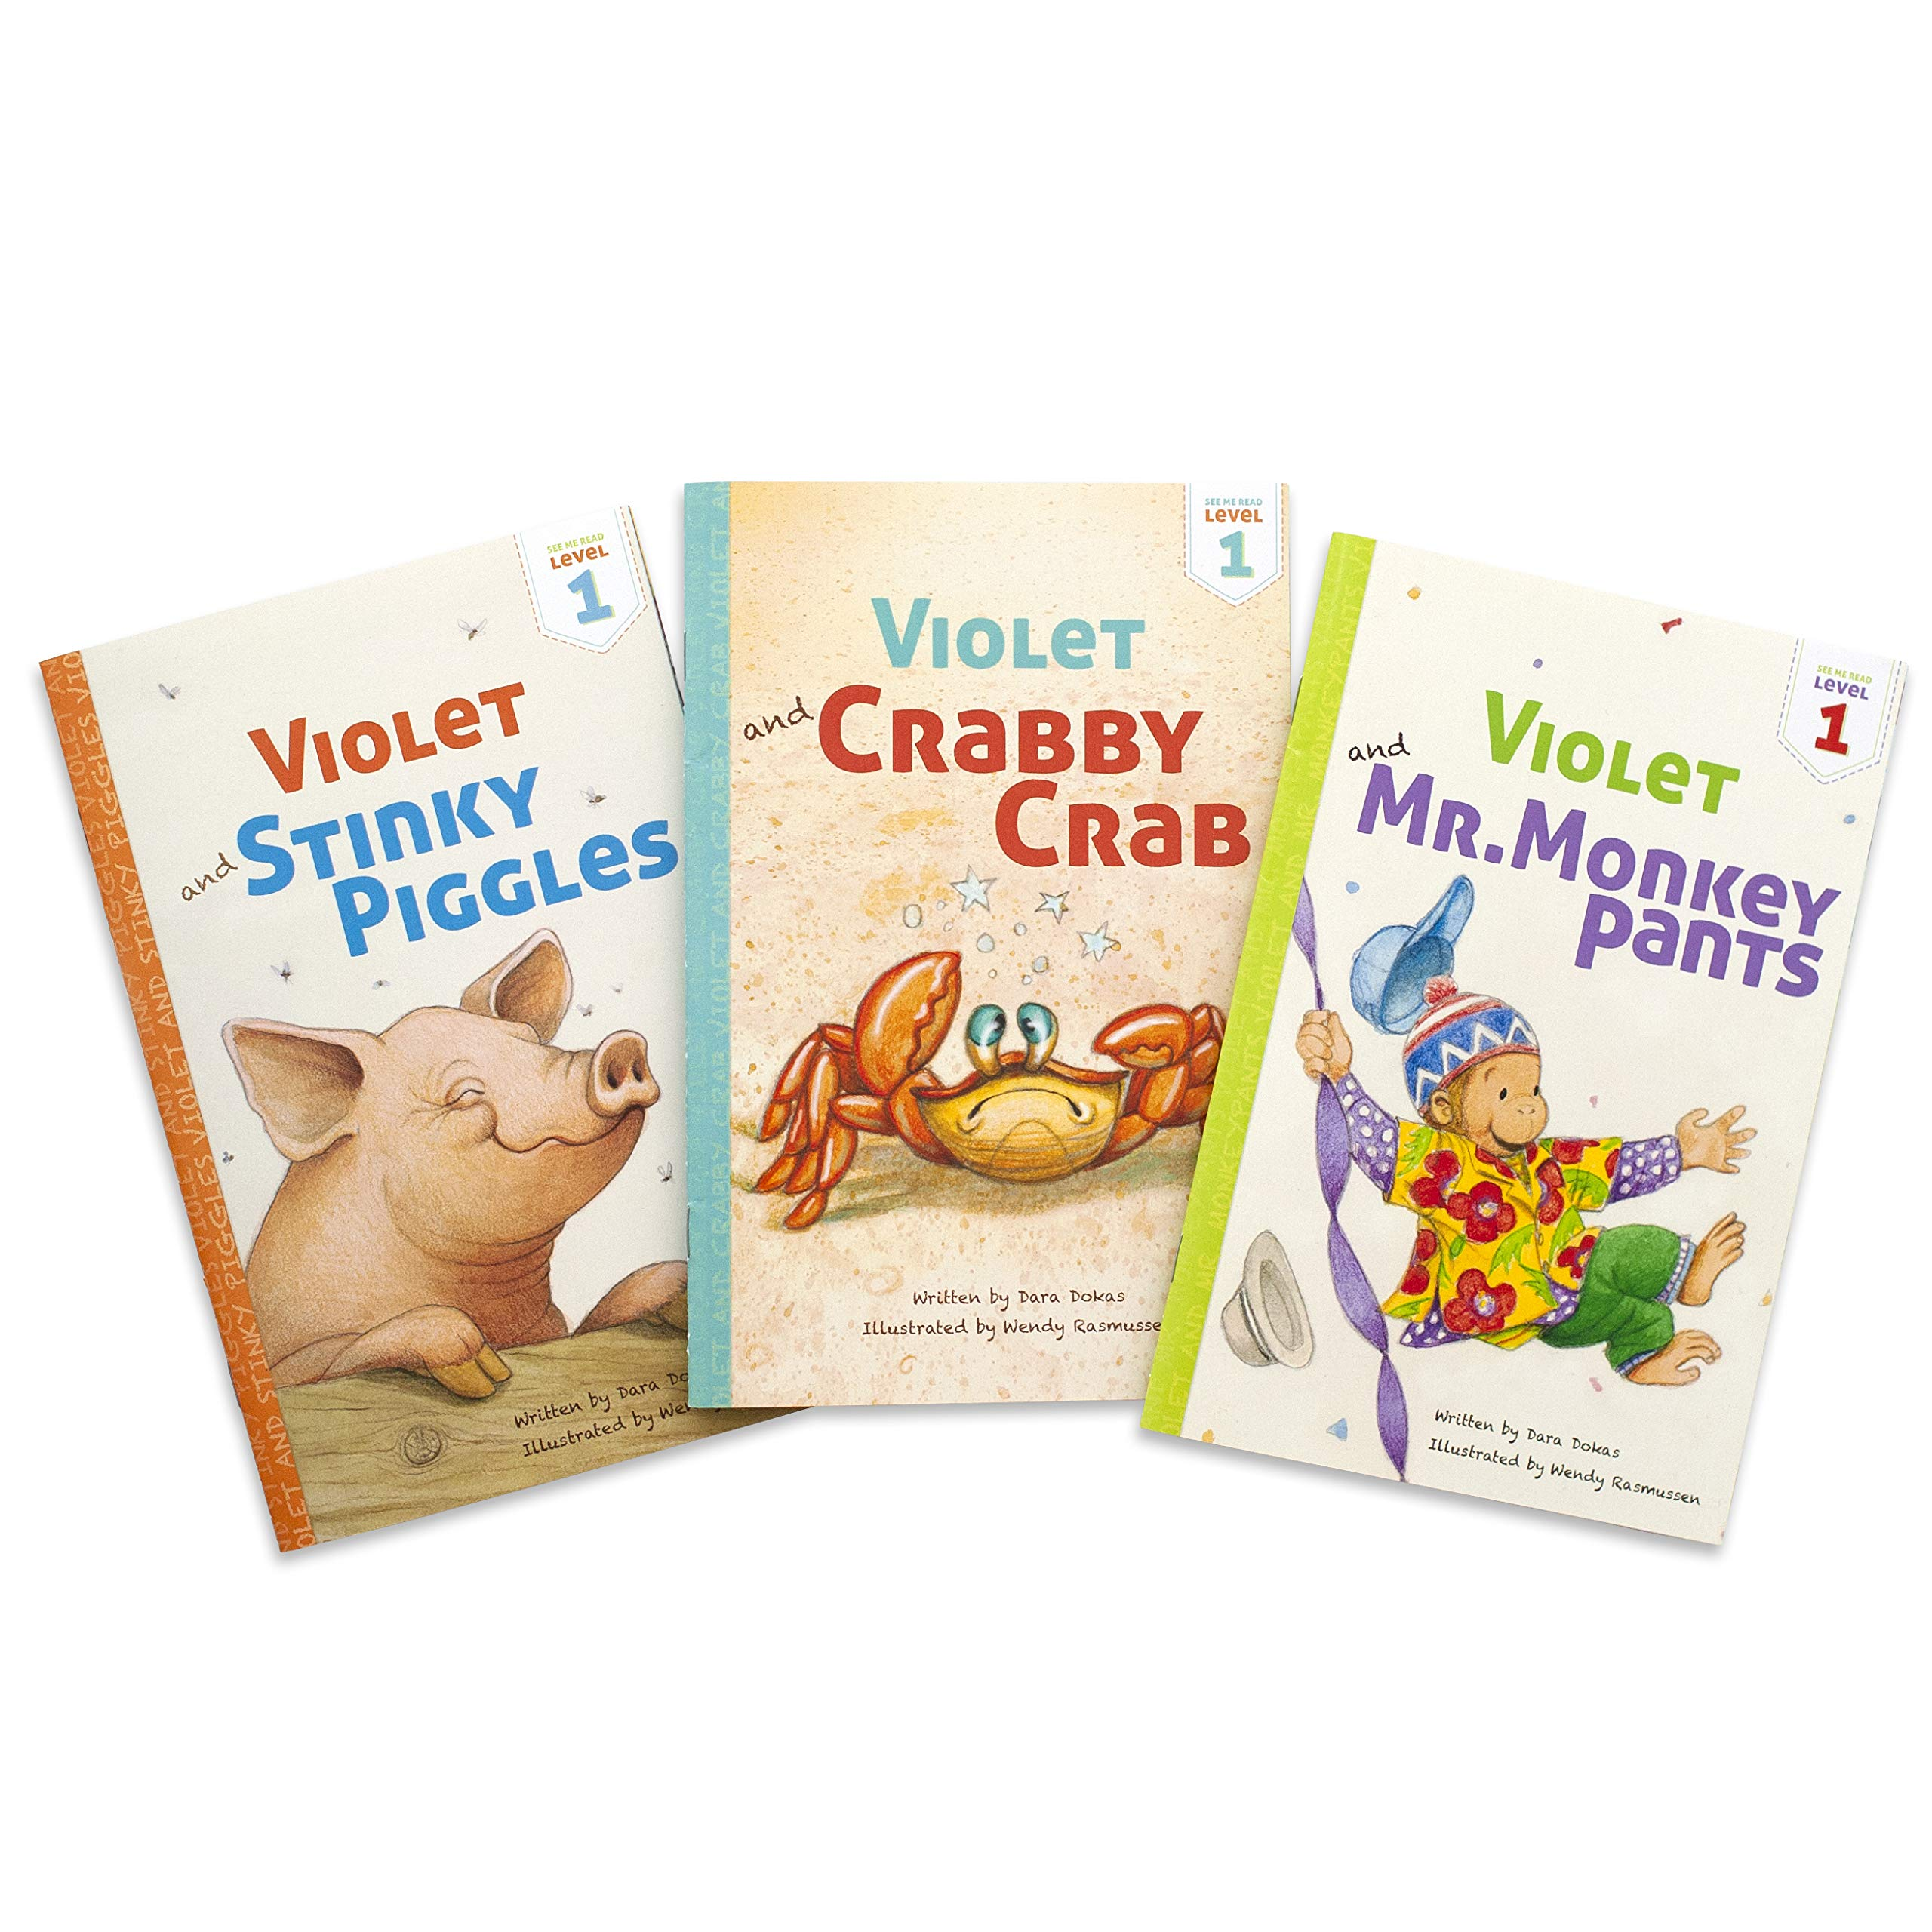 Level 1 Reading Books for Children Toddlers, Step into Reading, Personalized Storybooks